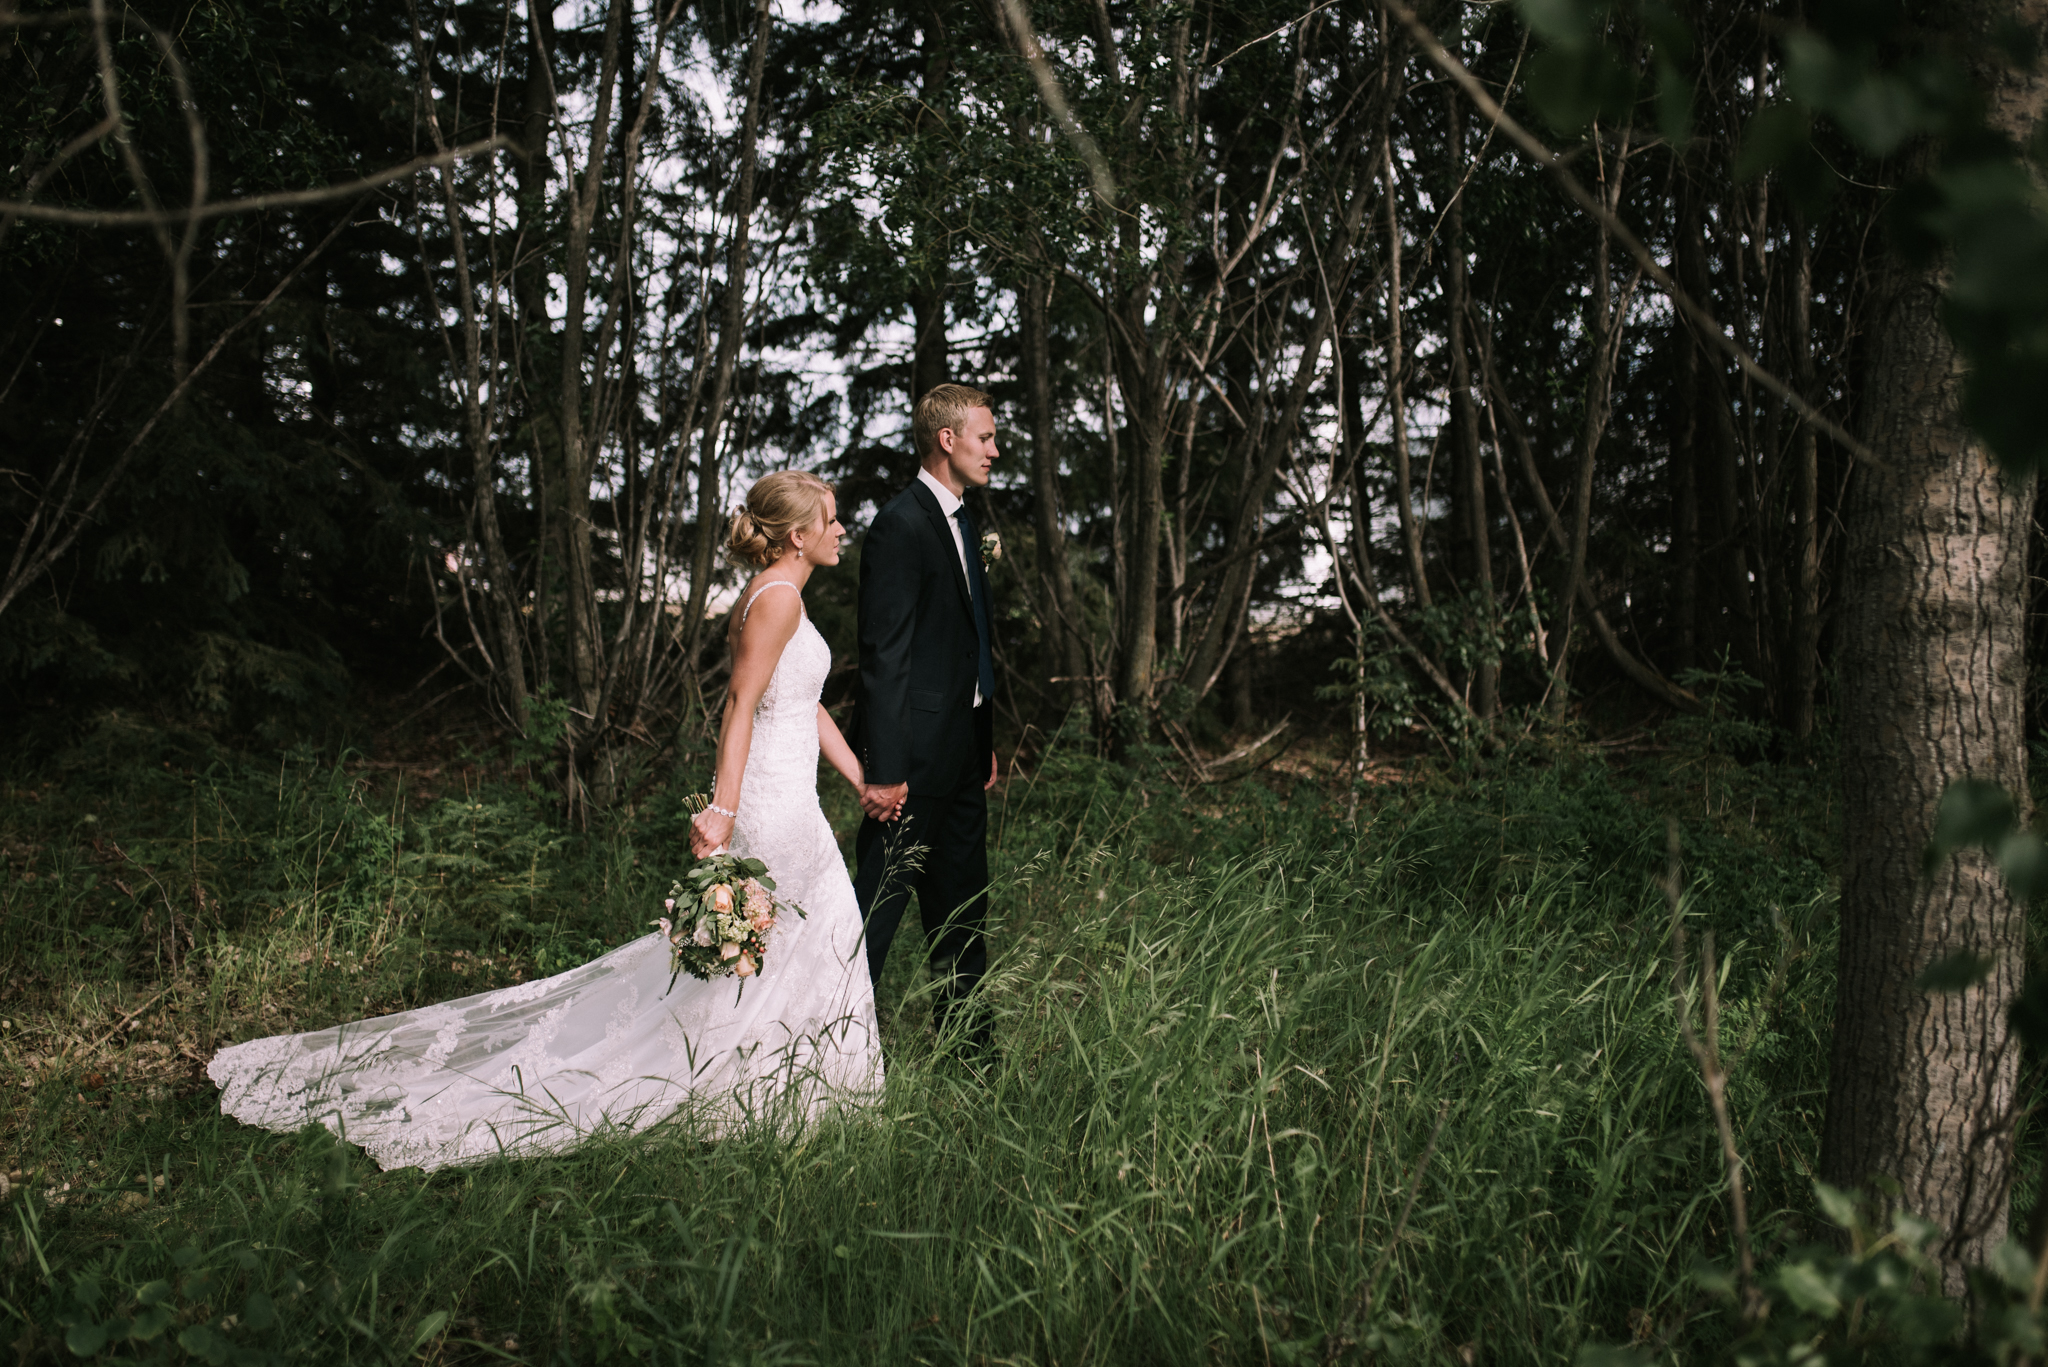 Jessica Leanne Photography, Wedding Photography